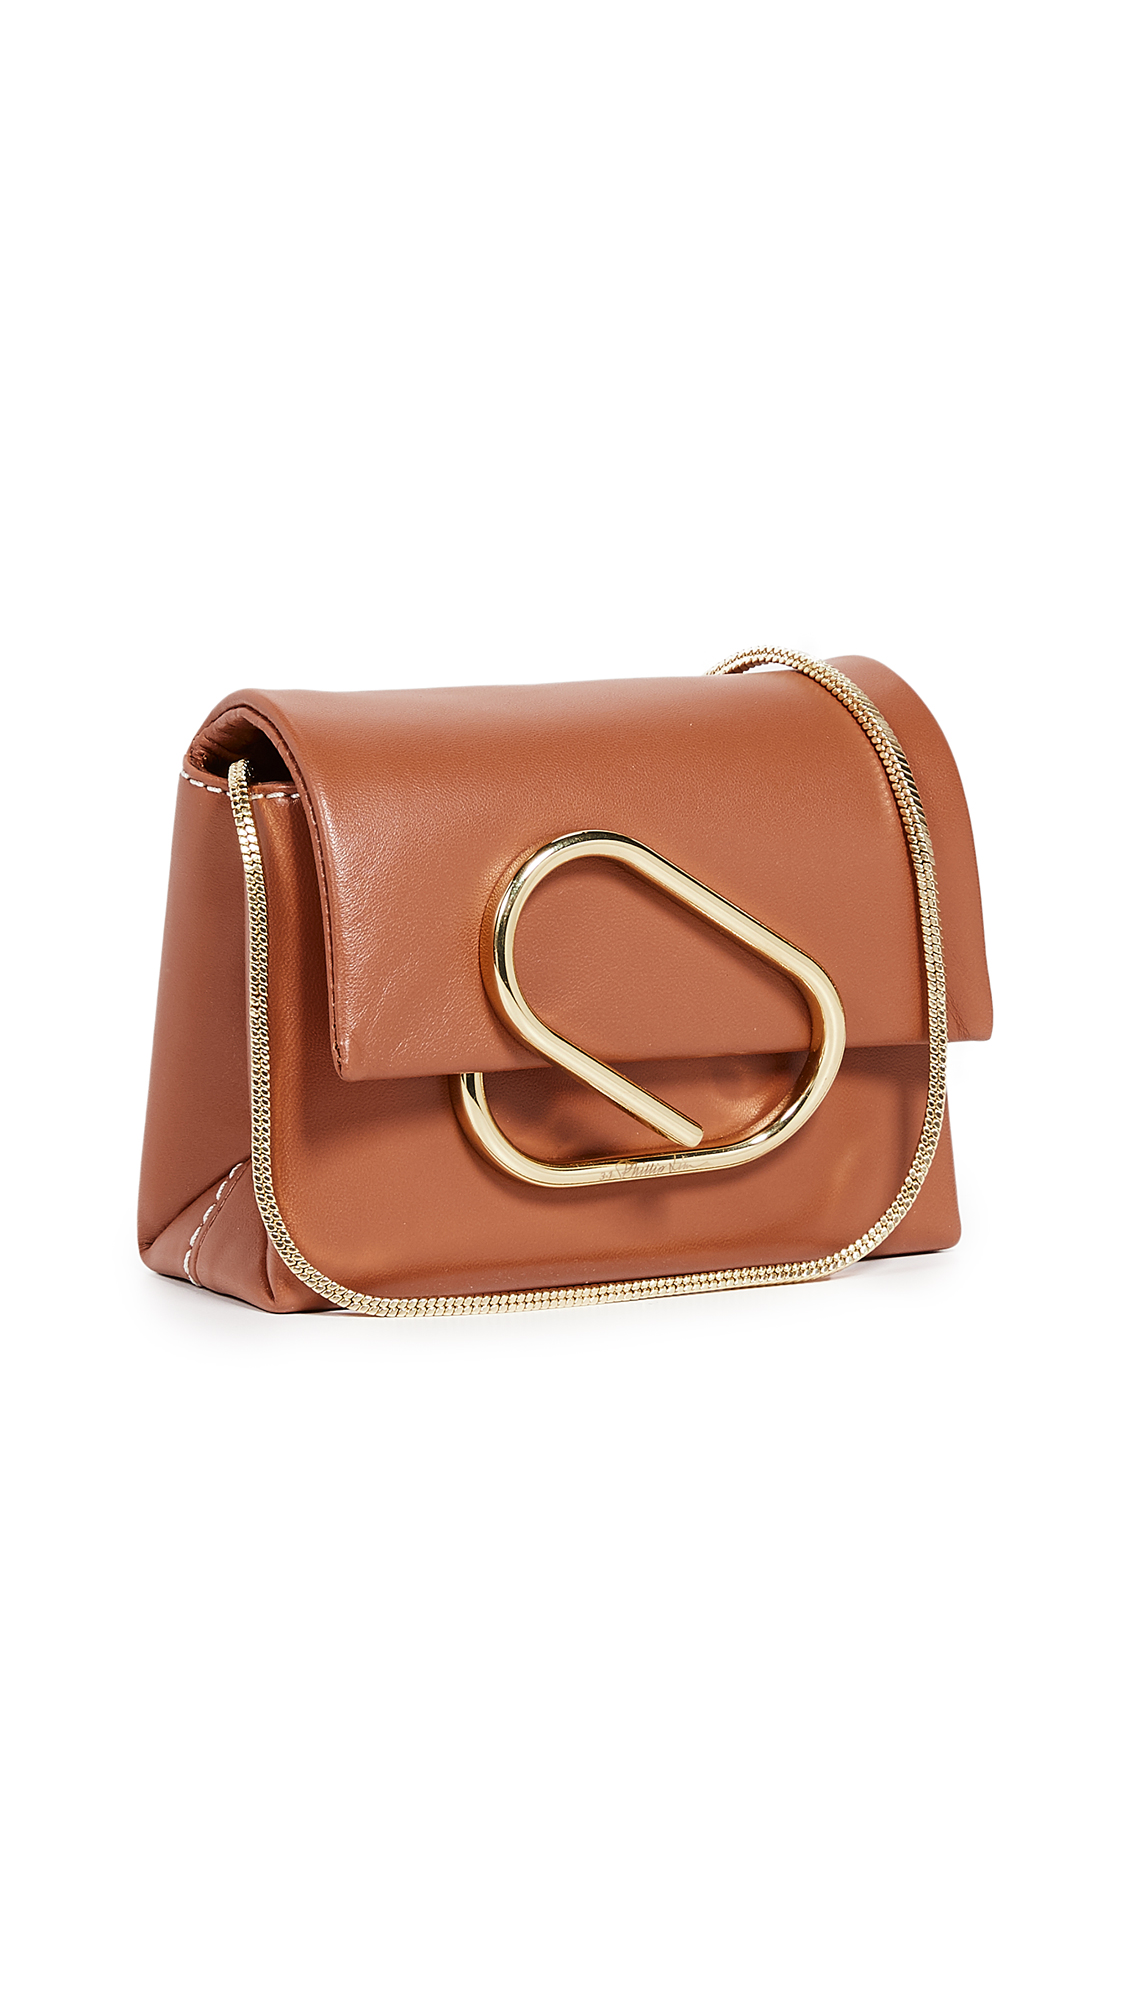 3.1 Phillip Lim Alix Micro Crossbody Bag - Cognac